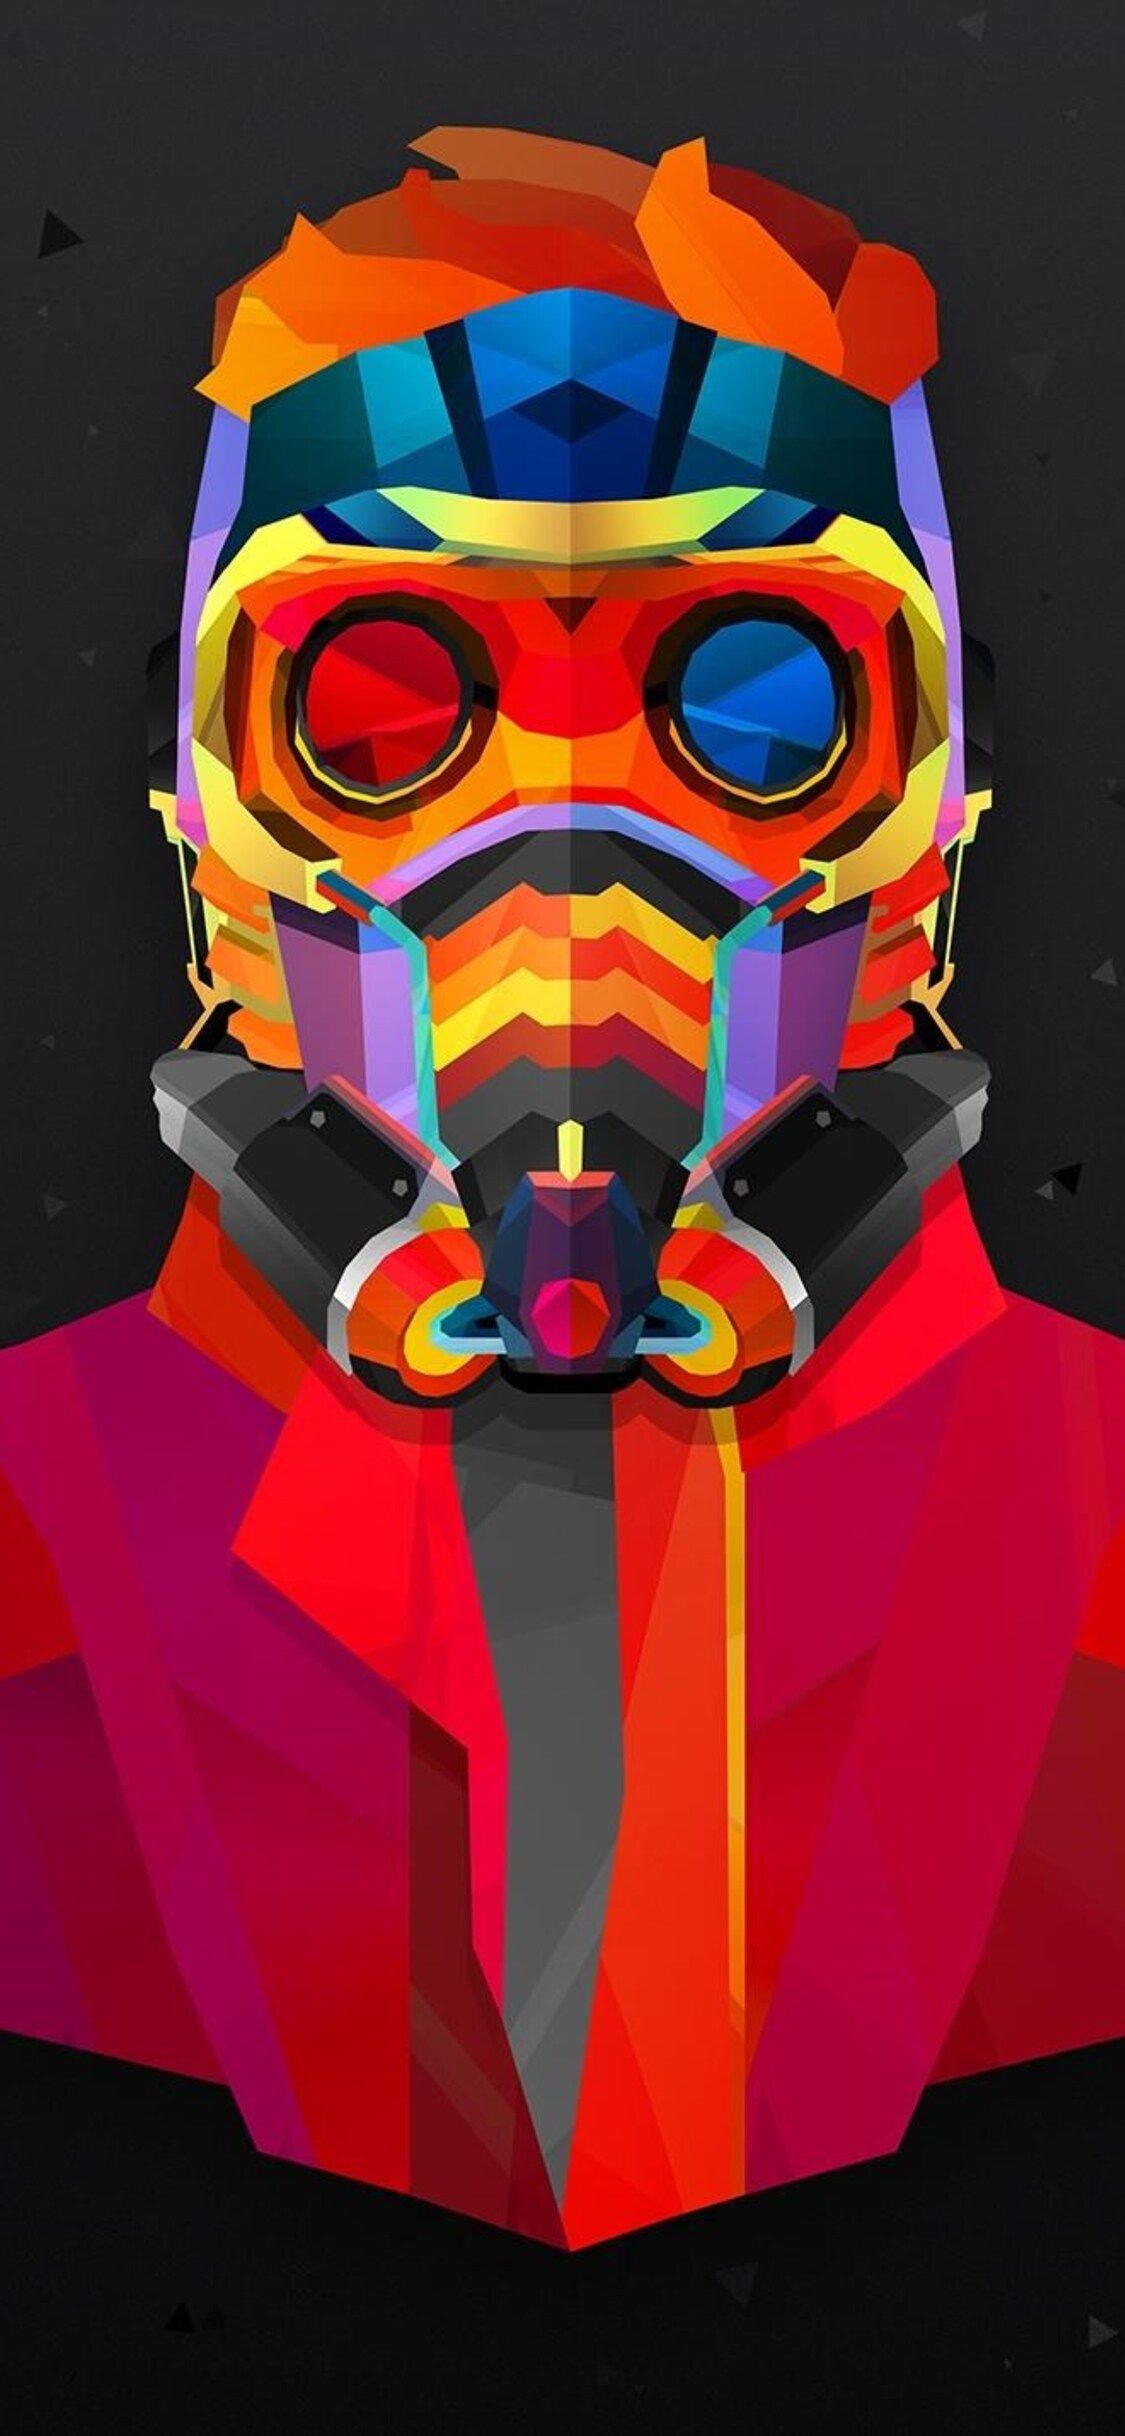 1125x2436 Star Lord Colorful Abstract Iphone Xs Iphone 10